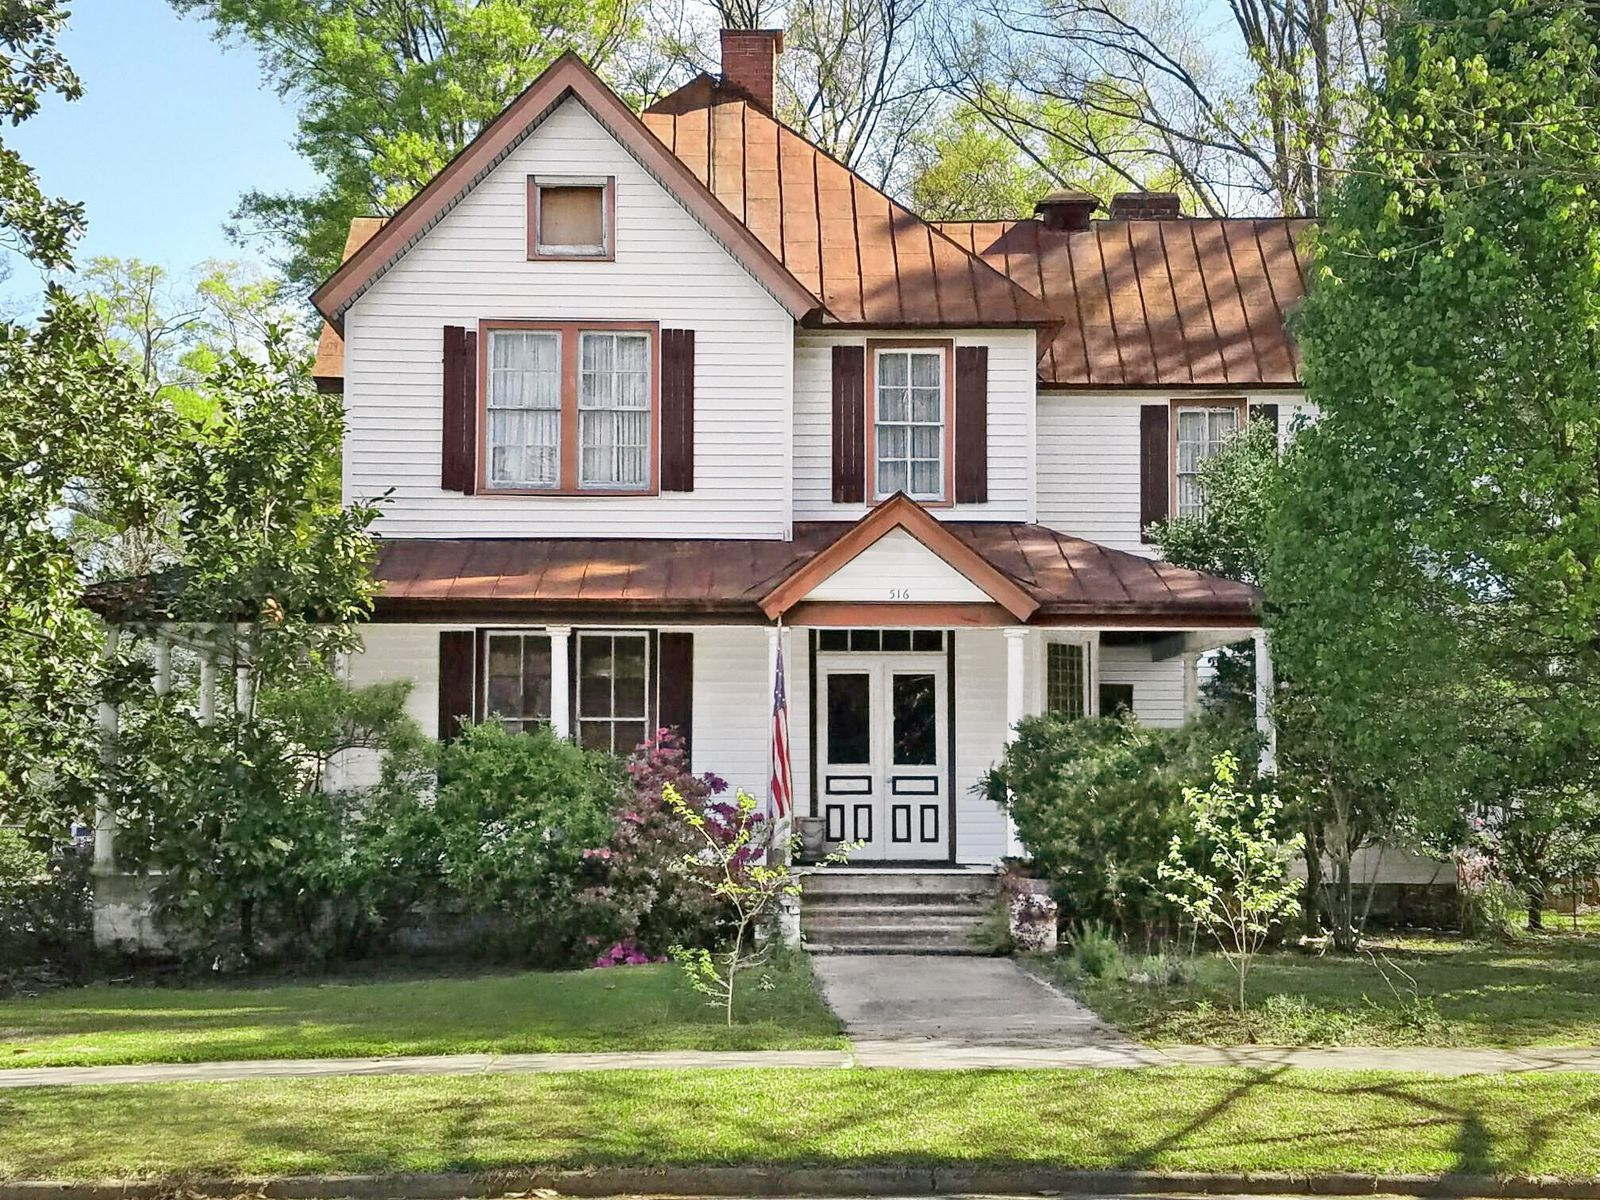 For Under 100K, One of These Charming Country Homes Can